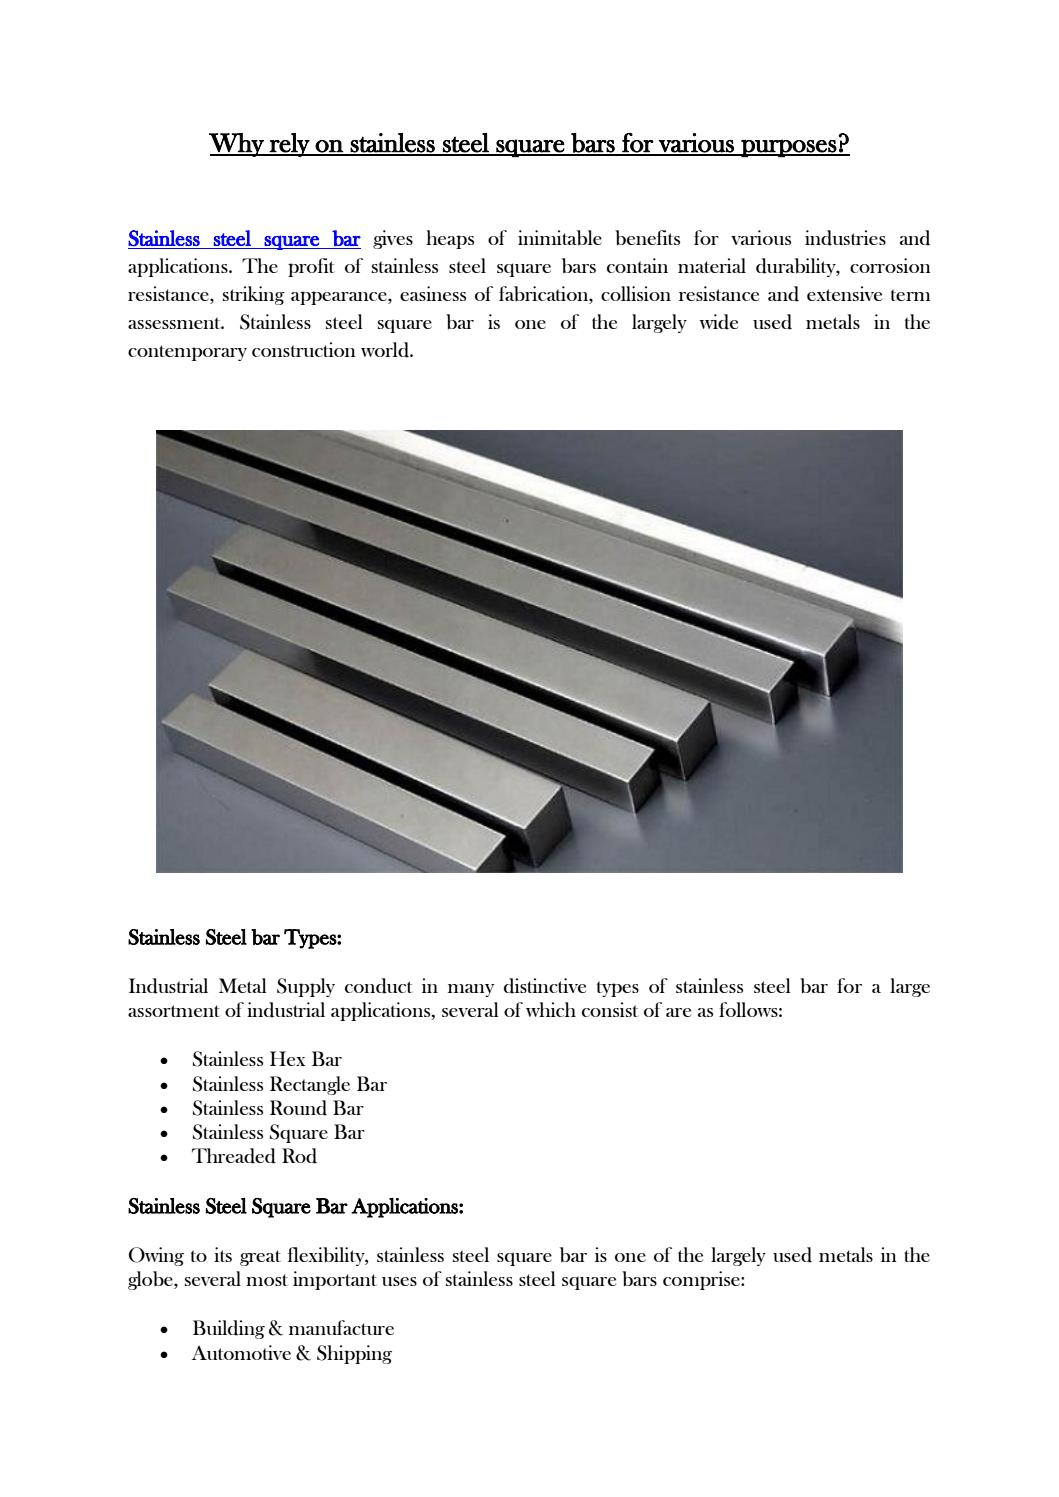 Why rely on stainless steel square bars for various purposes